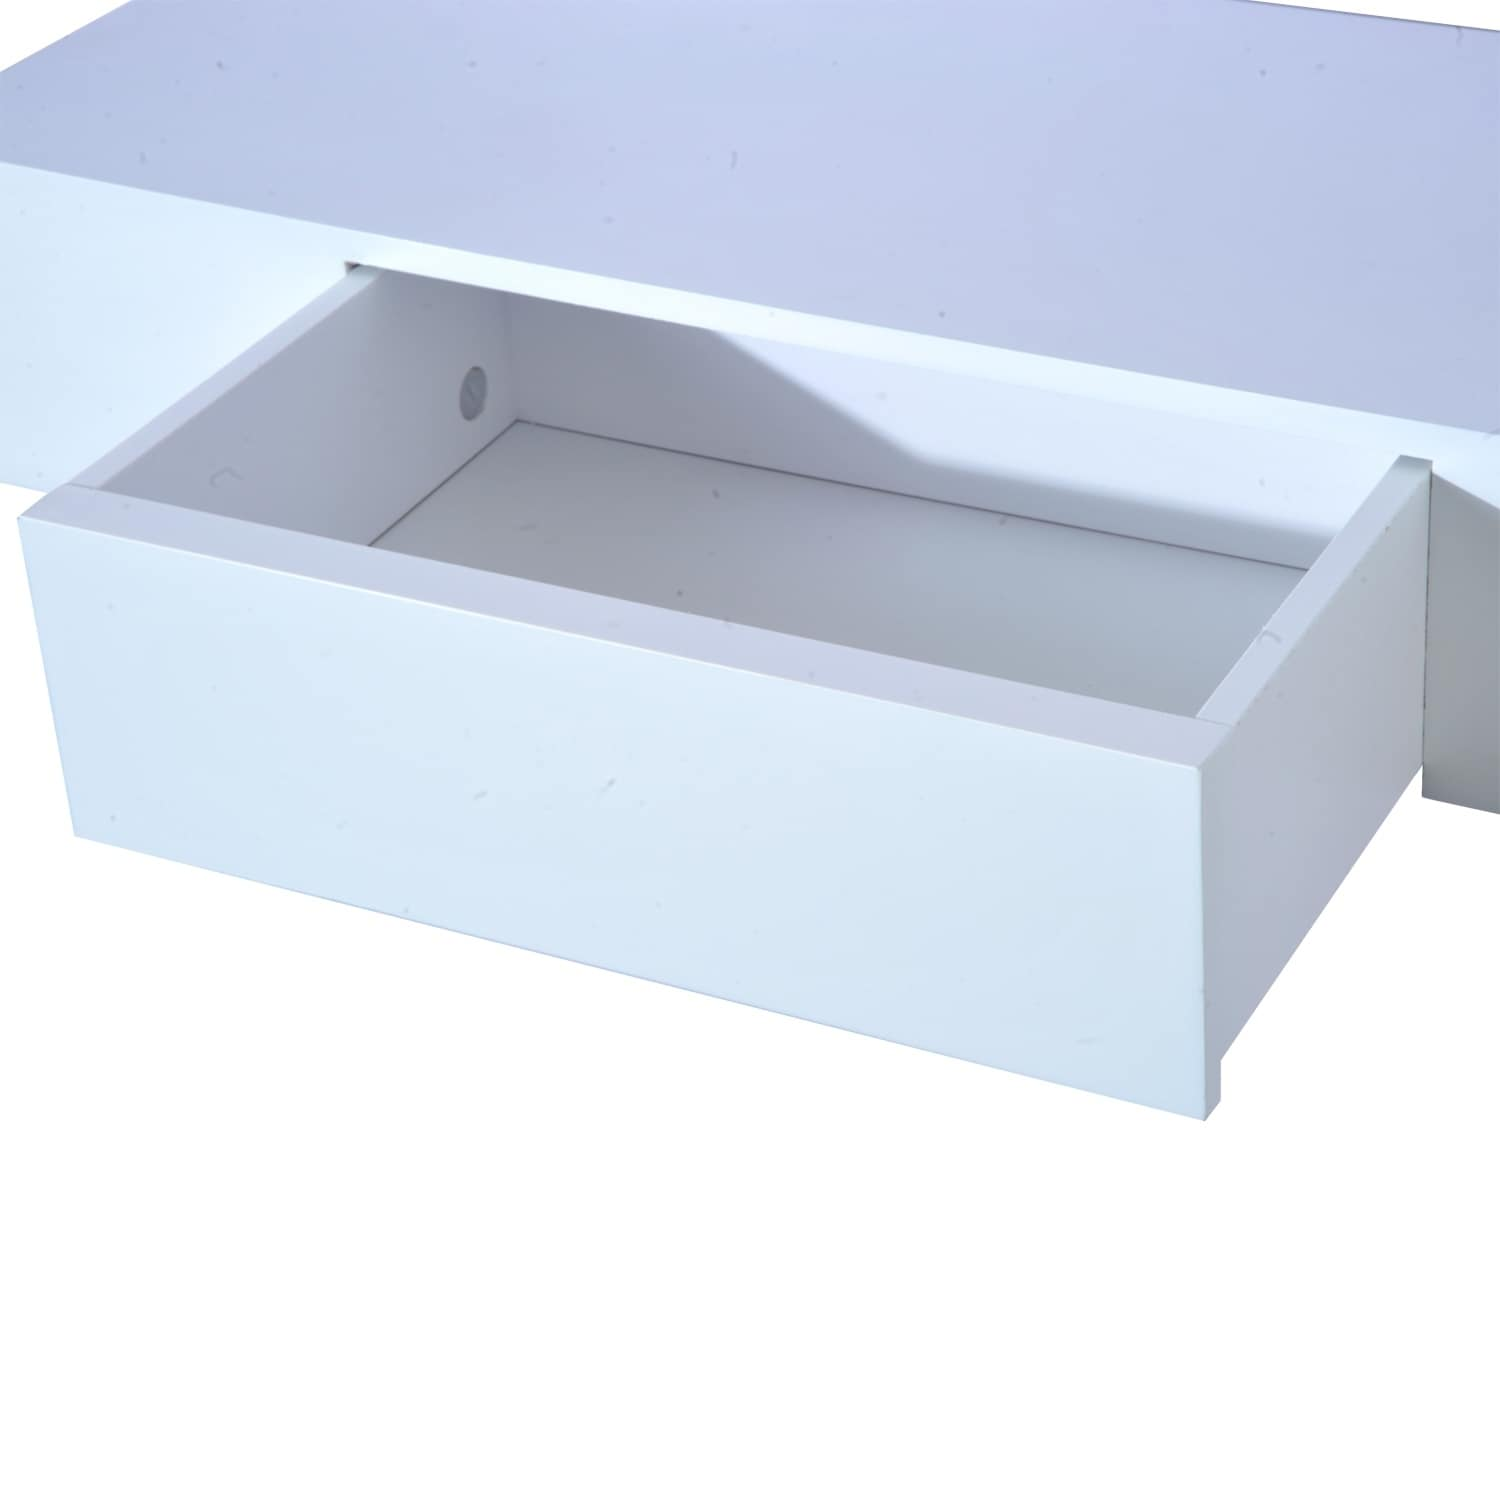 exciting very drawer cabinet godmorgon with small wall high ideash interesting sinks white drawers bathroom odensvik gloss design pics ikea ikeai mounted sink